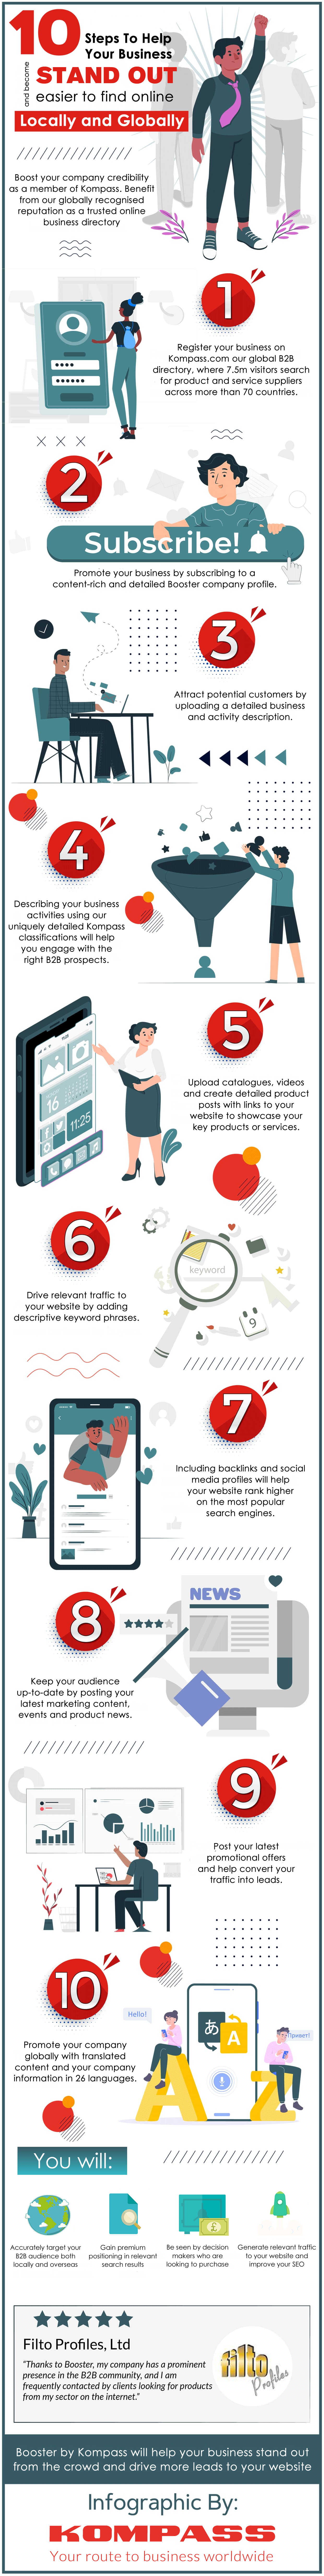 Kompass Infographic - 10 Steps To Help Your Business Stand Out Online